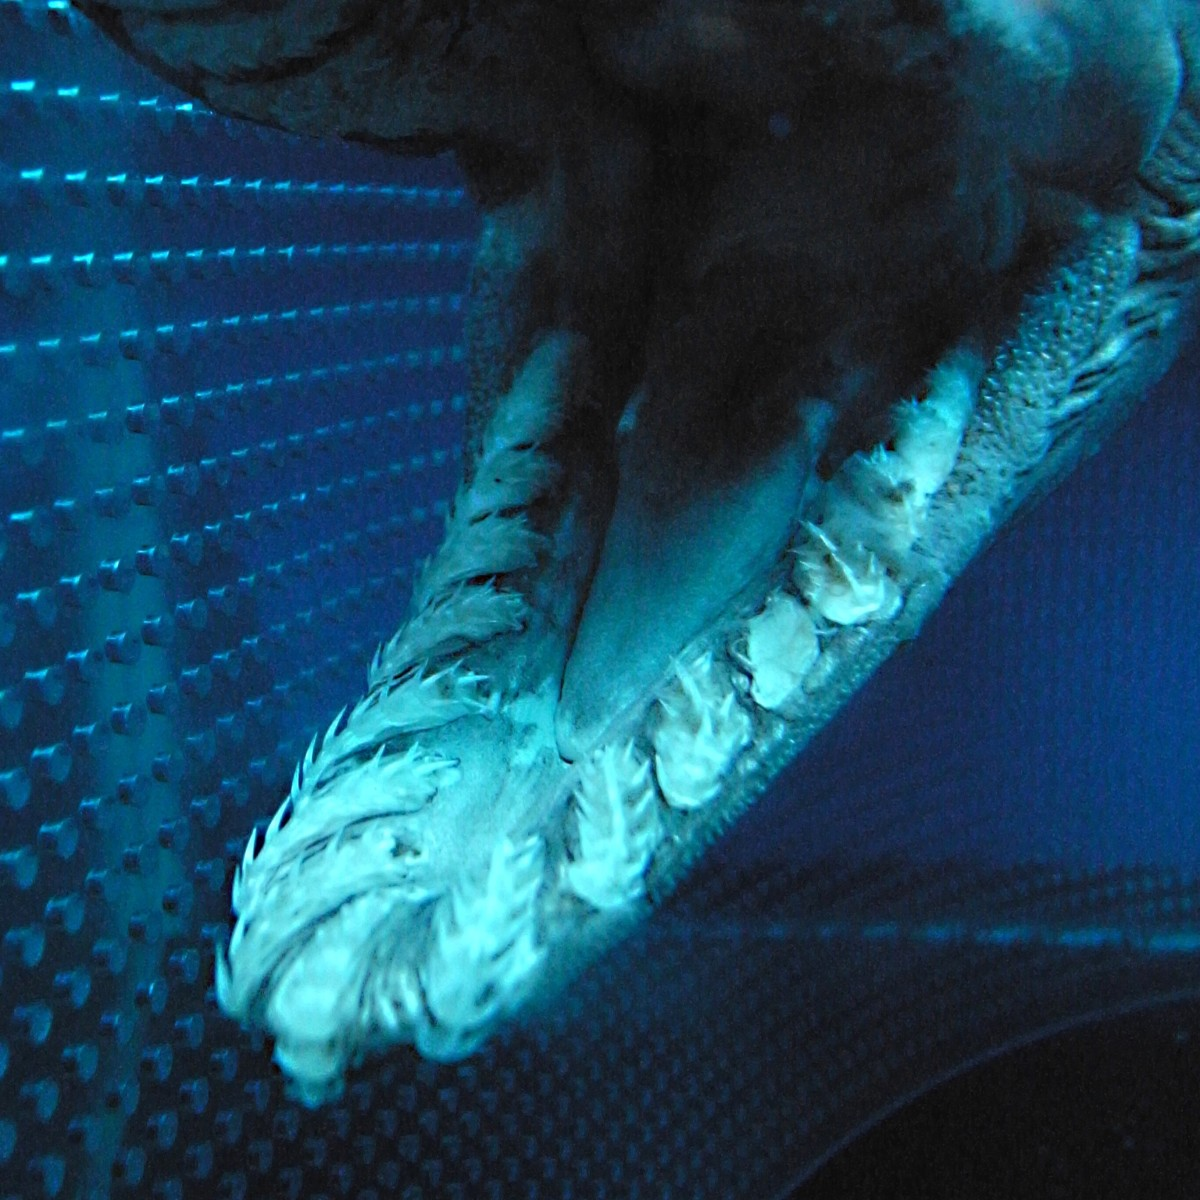 The teeth of a frilled shark